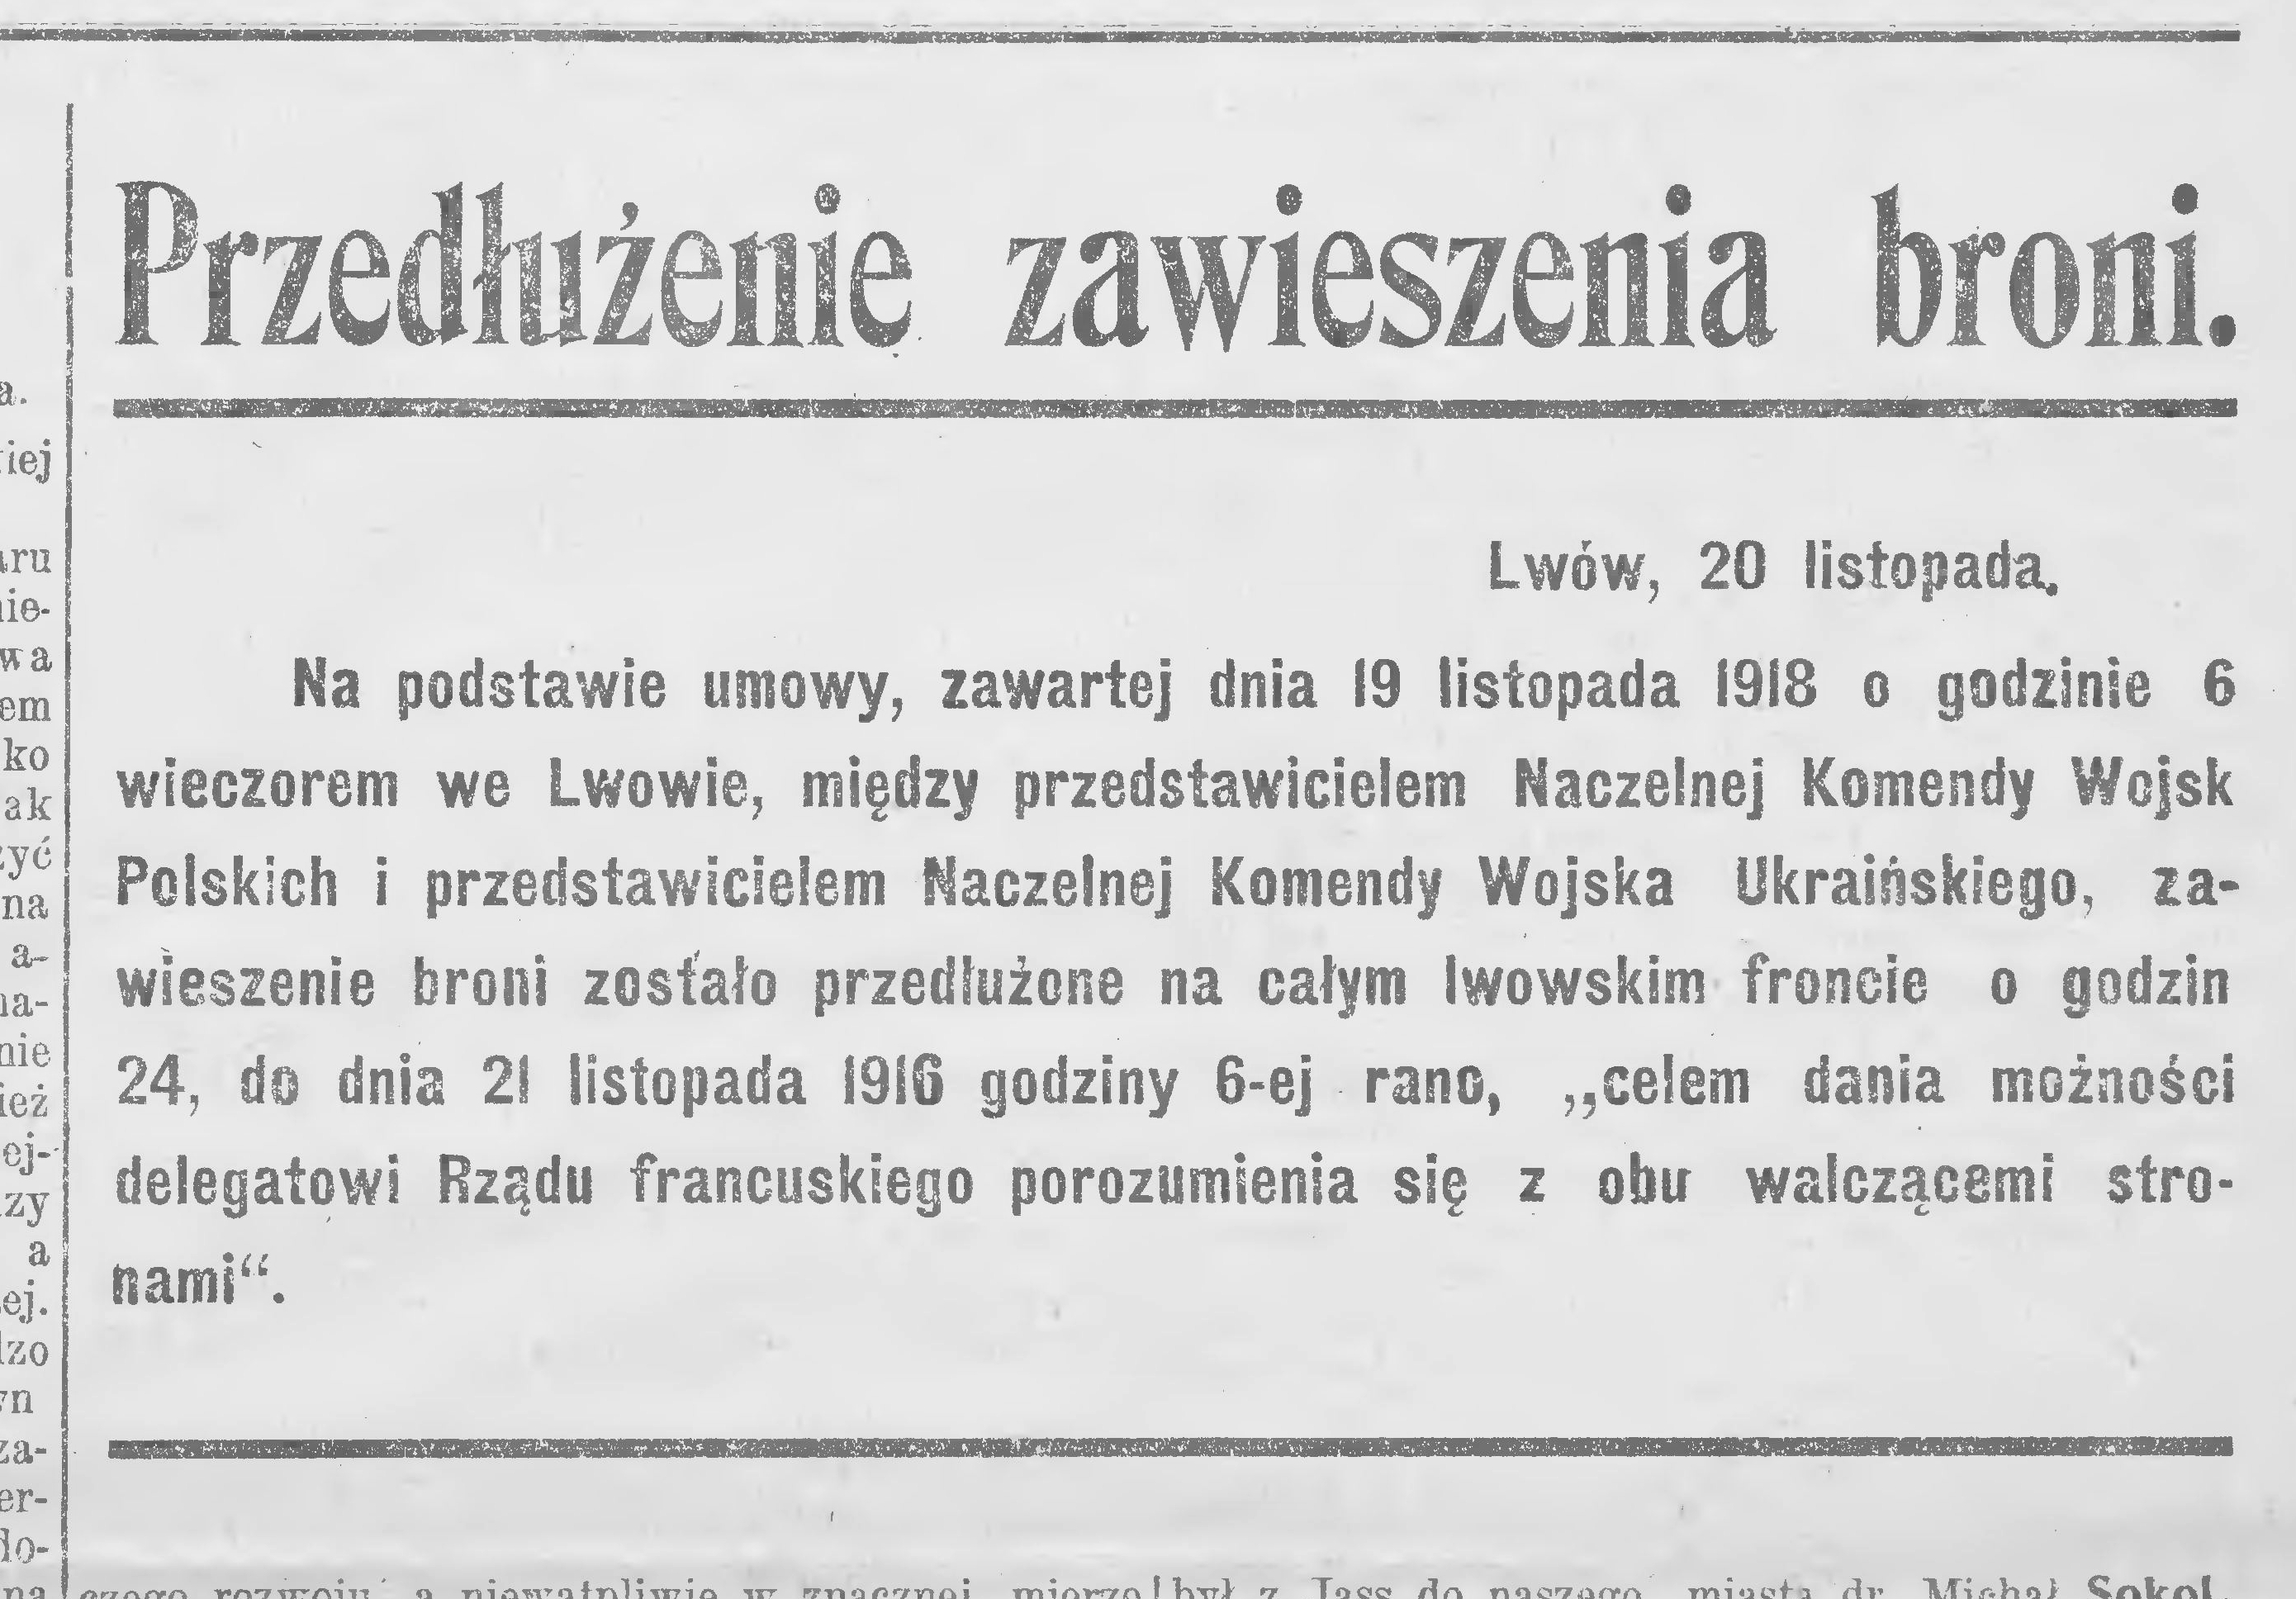 Lieutenant Ludwik de Laveaux, delegated by the Polish command to sign the ceasefire agreement